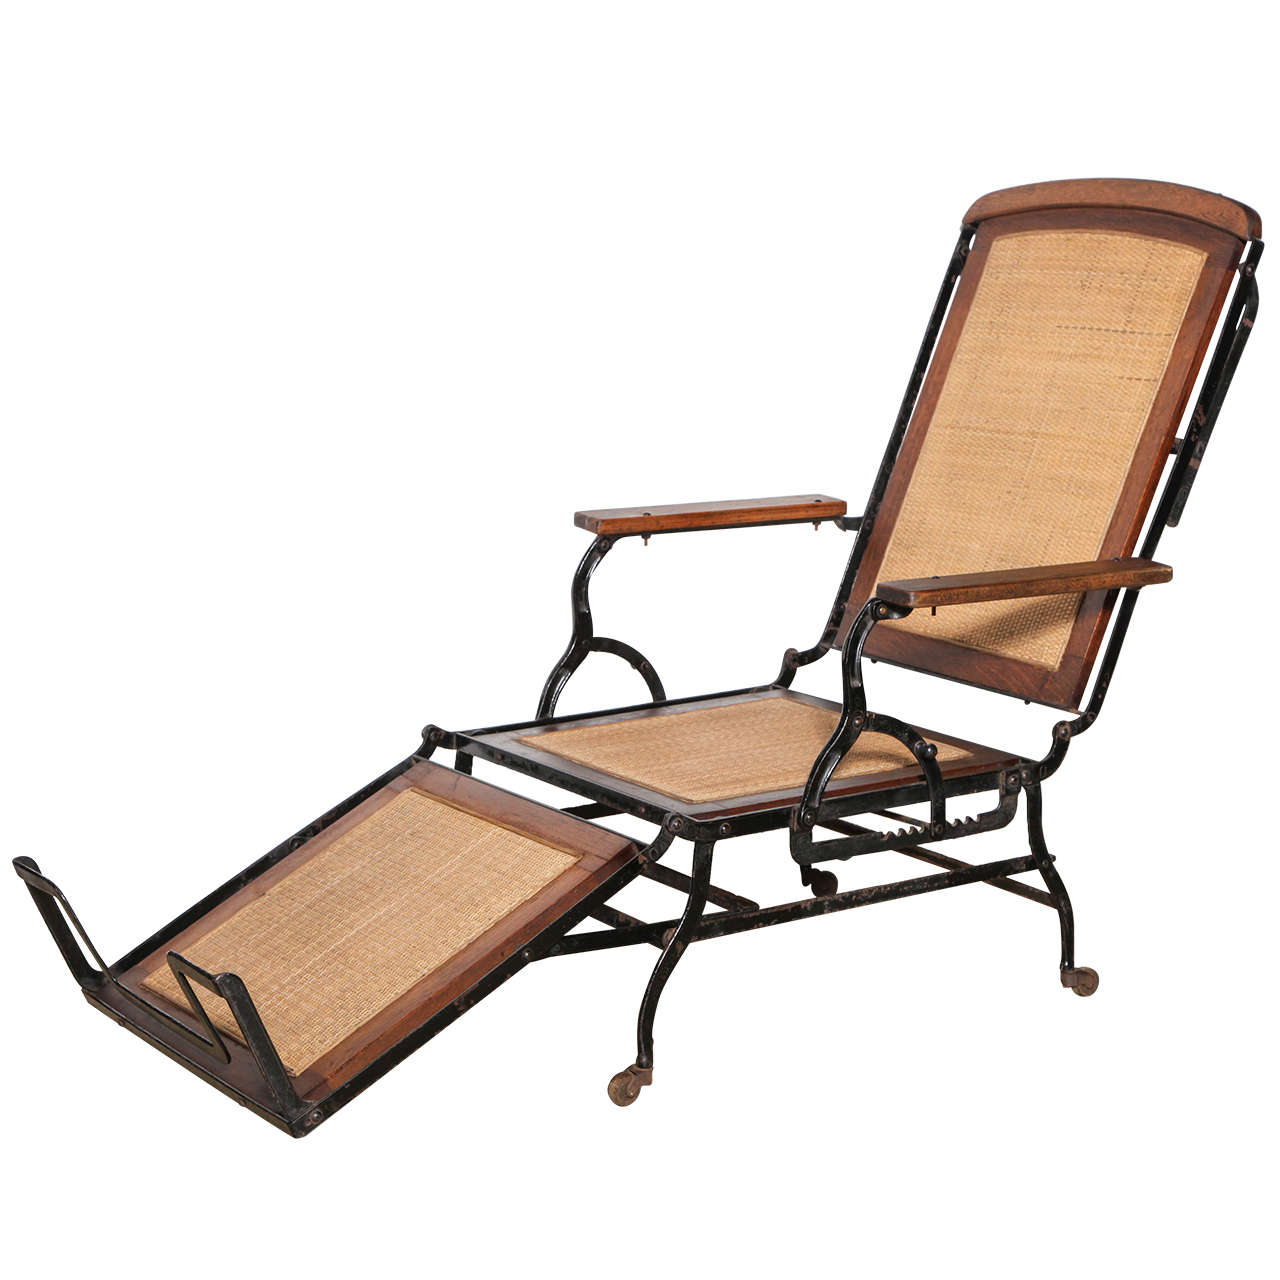 recliner lawn pin chair beach lounge folding pool chaise outdoor chairs patio